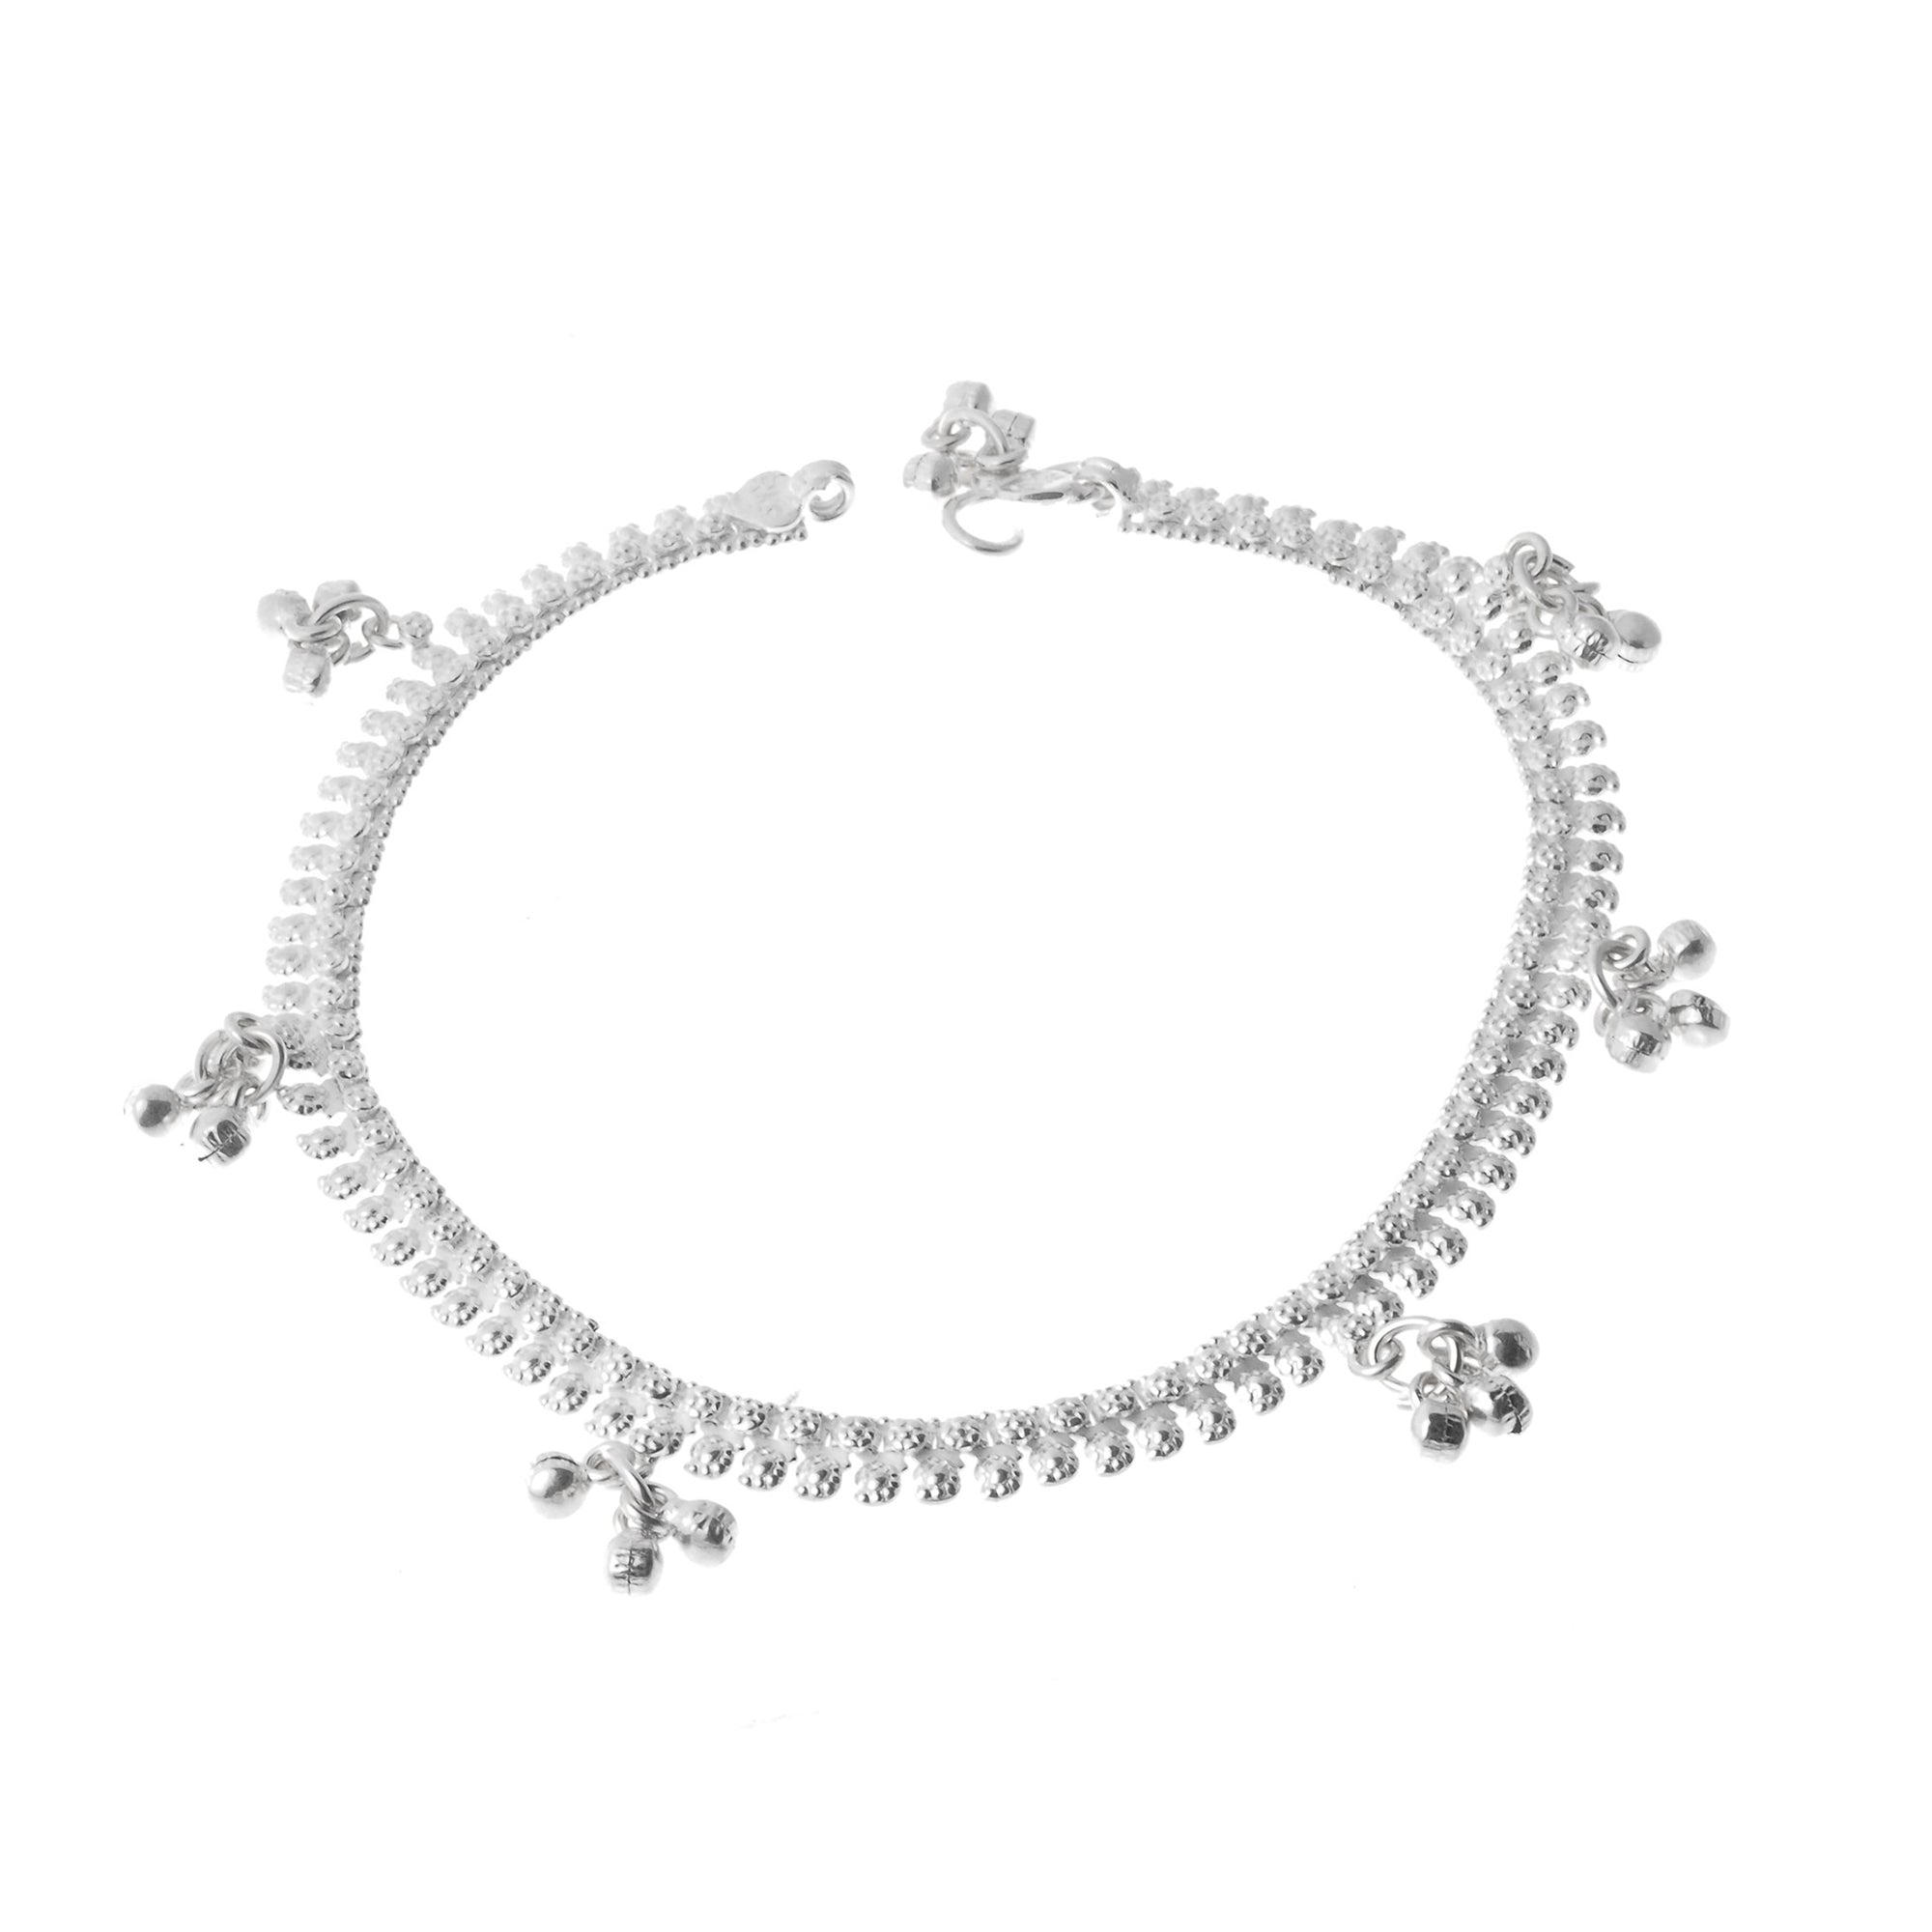 Silver Anklets with Ghughri Bell Charms A-7160 - Single